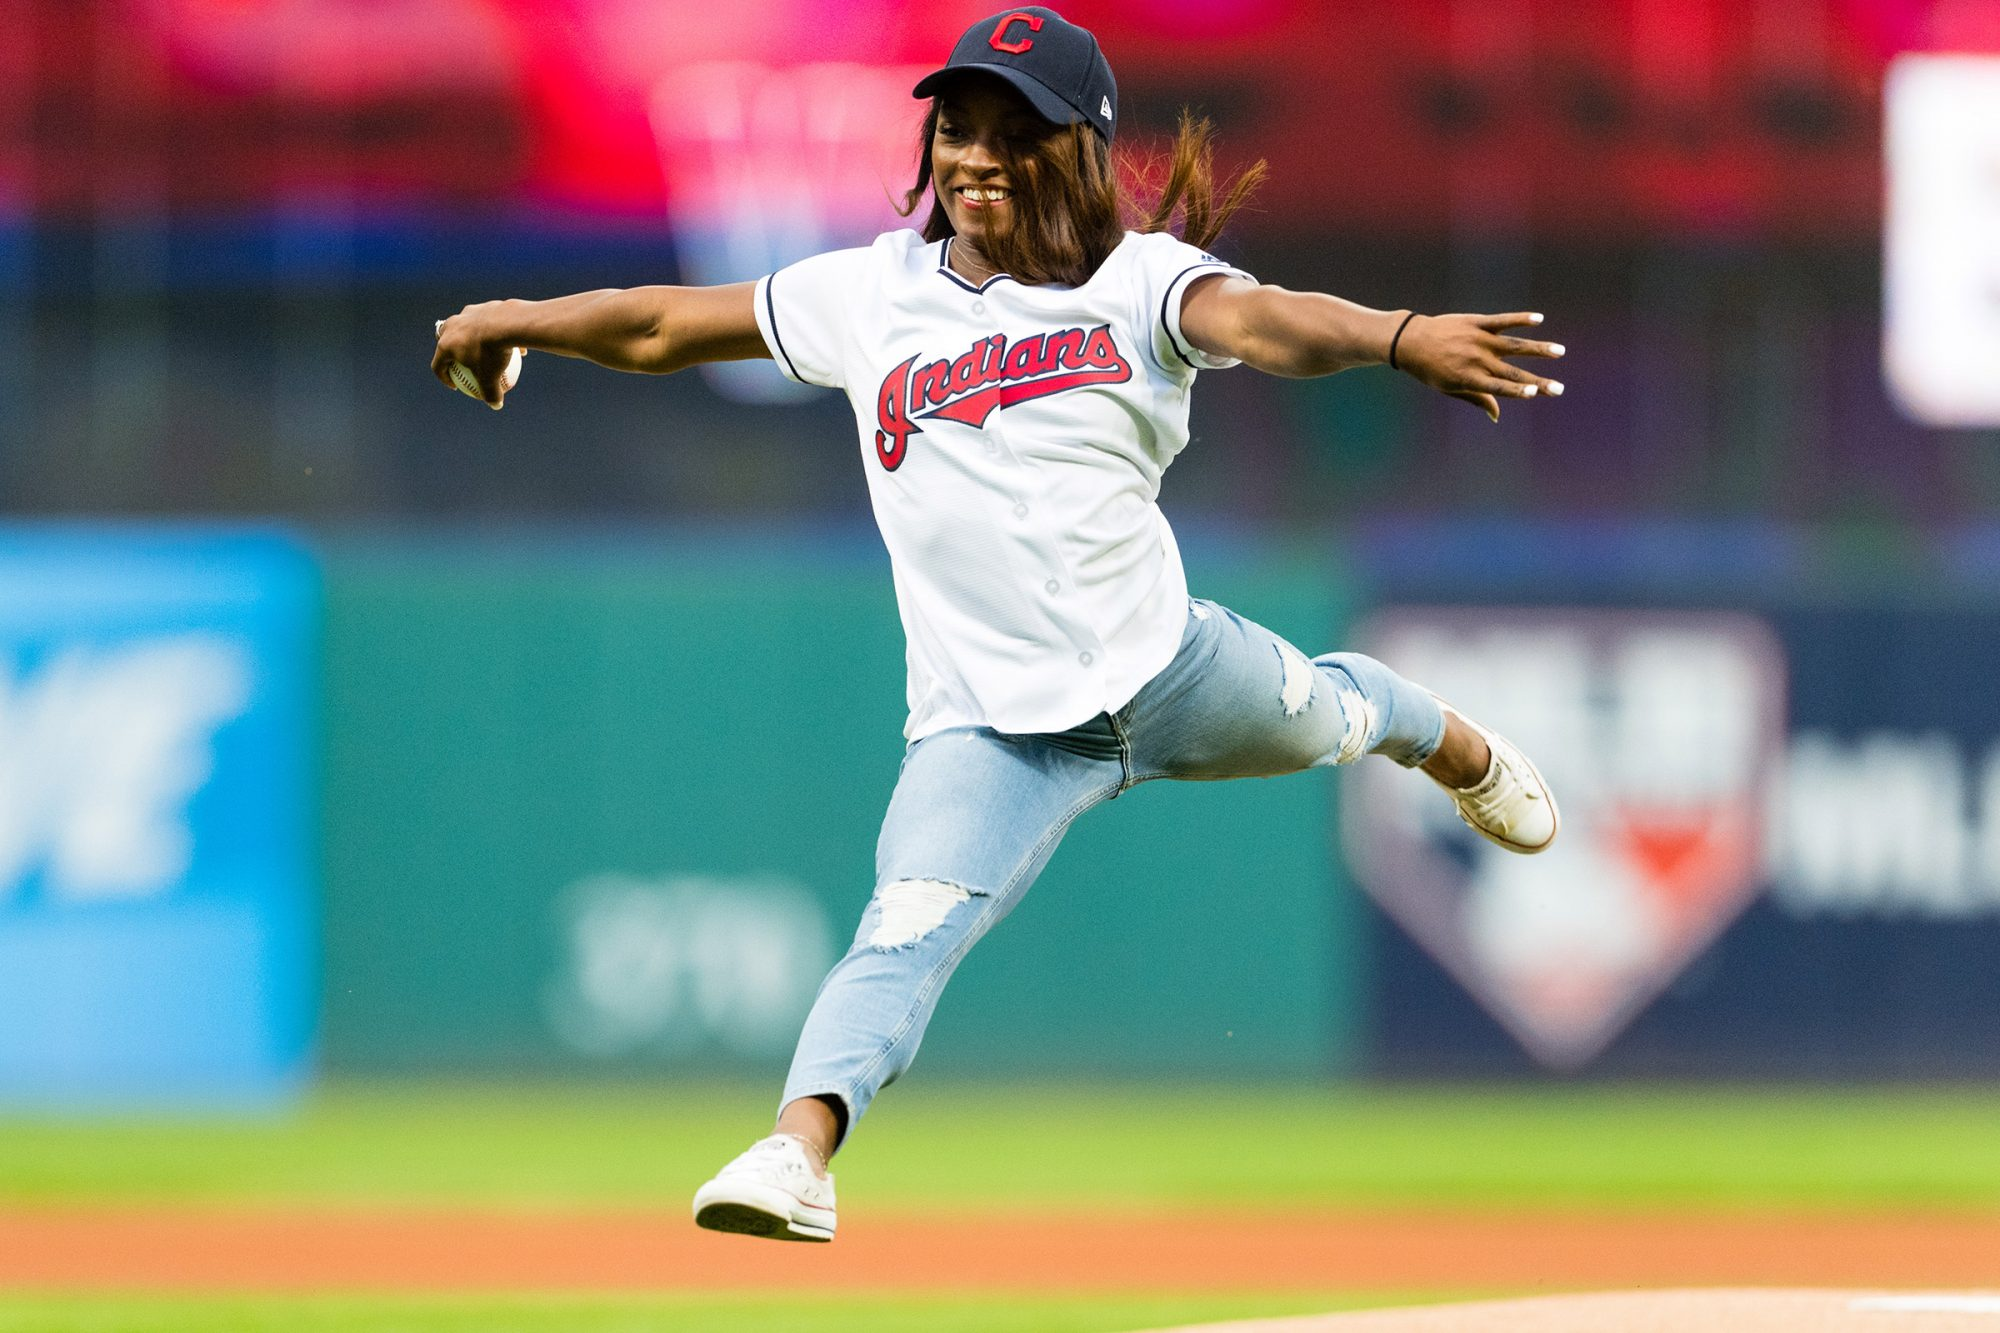 Simone Biles throws out the first pitch prior to the game between the Cleveland Indians and the Baltimore Orioles at Progressive Field on September 8, 2017